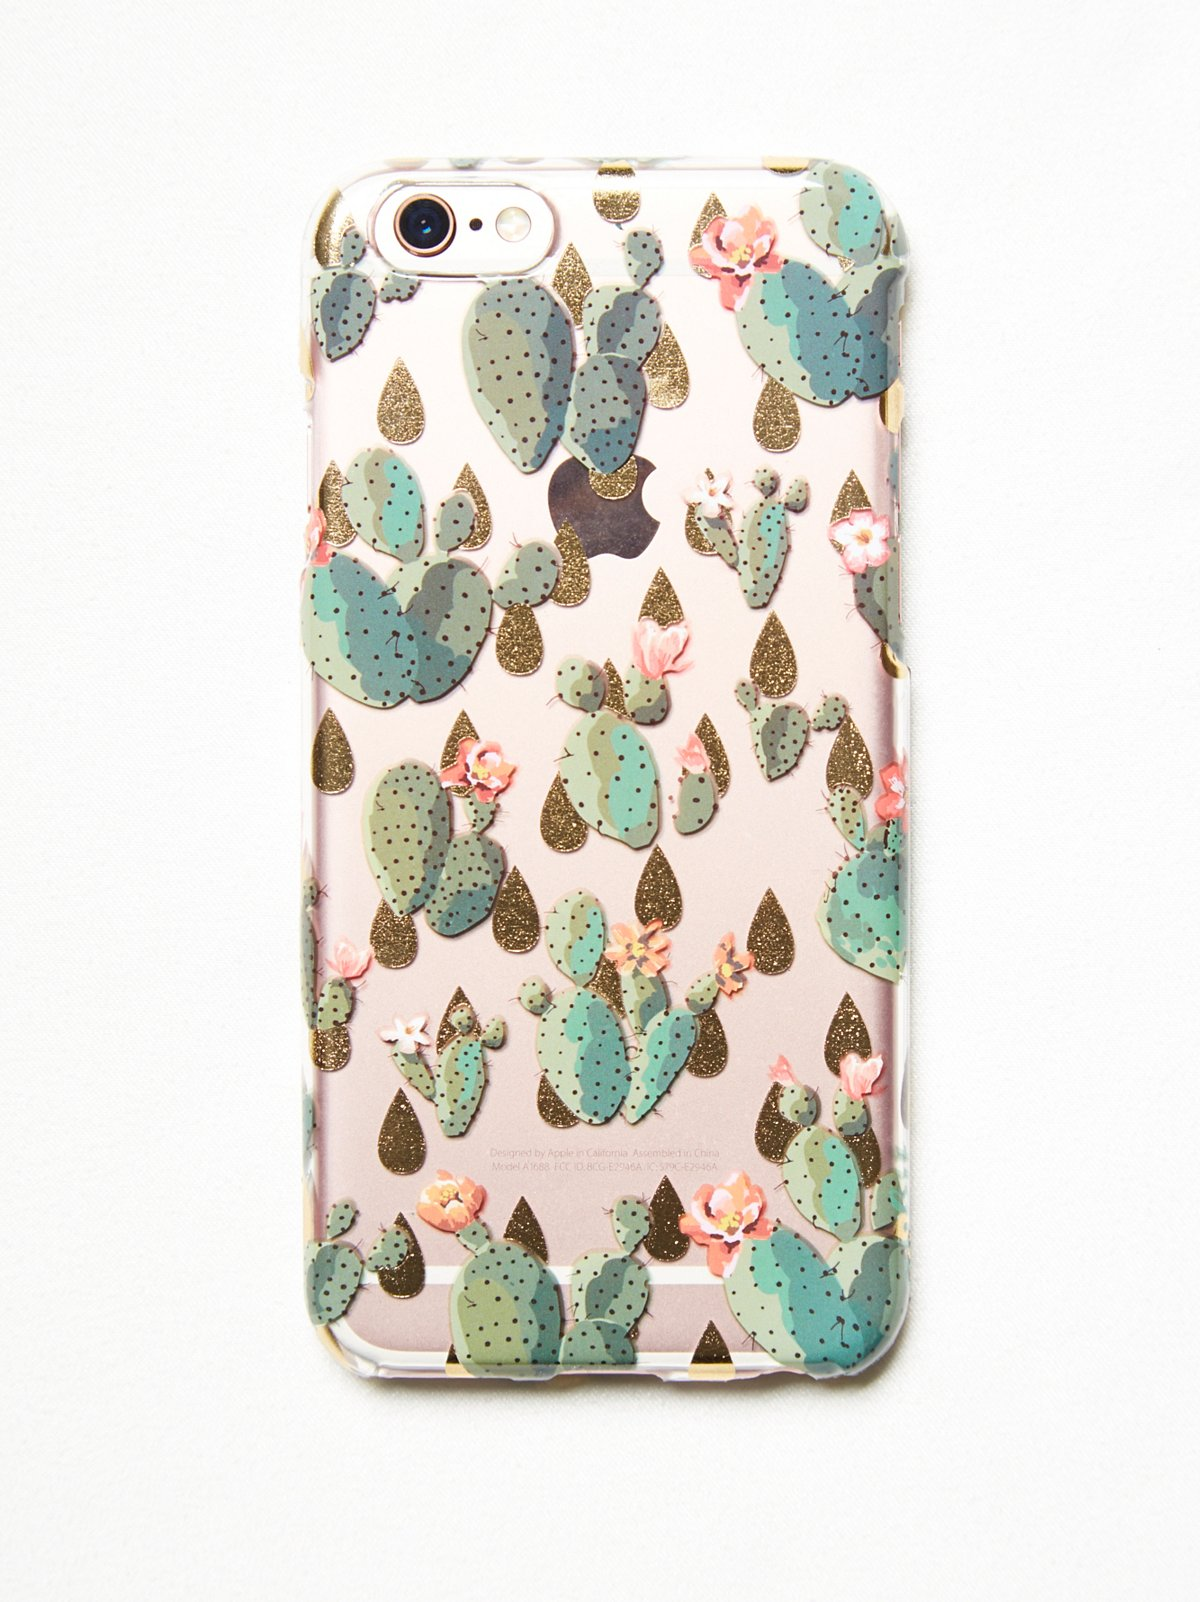 Botanical Printed iPhone Case